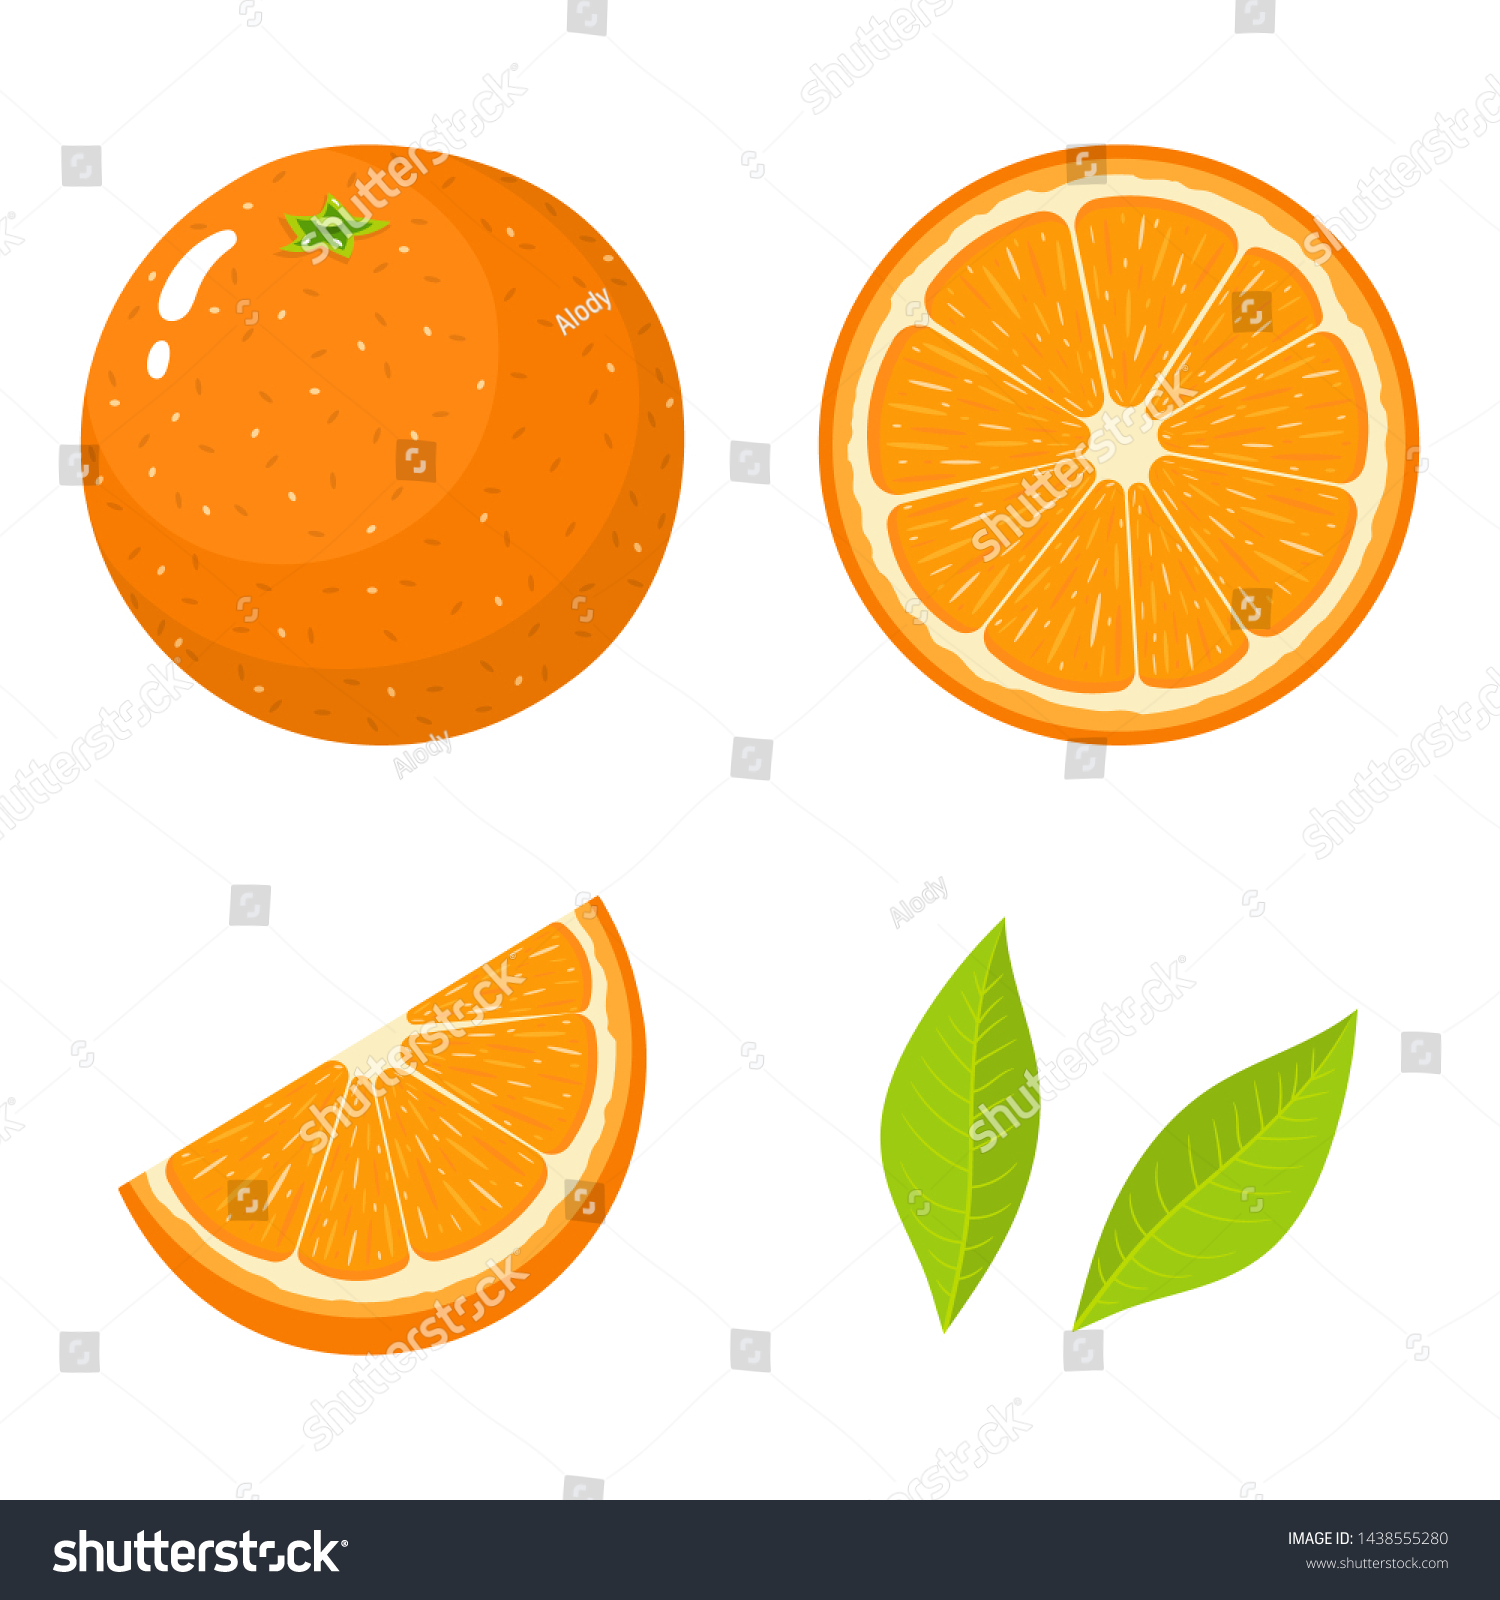 Set of fresh whole, half, cut slice and leaves orange fruit isolated on white background. Tangerine. Organic fruit. Cartoon style. Vector illustration for any design. #1438555280